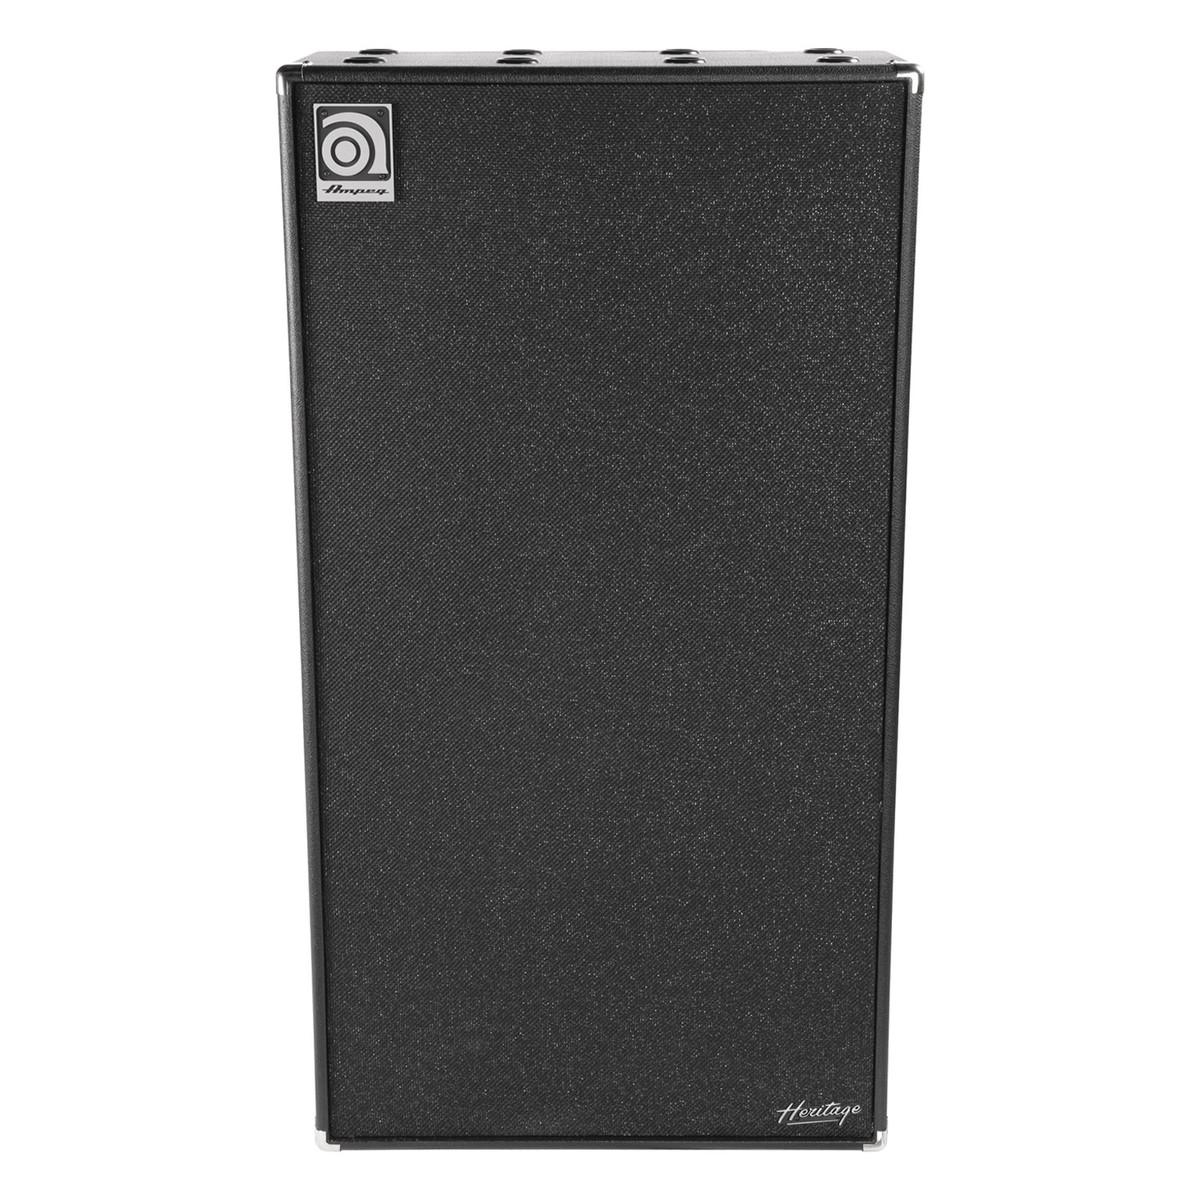 Click to view product details and reviews for Ampeg Heritage Svt 810e 8 X 10 Speaker Cabinet.